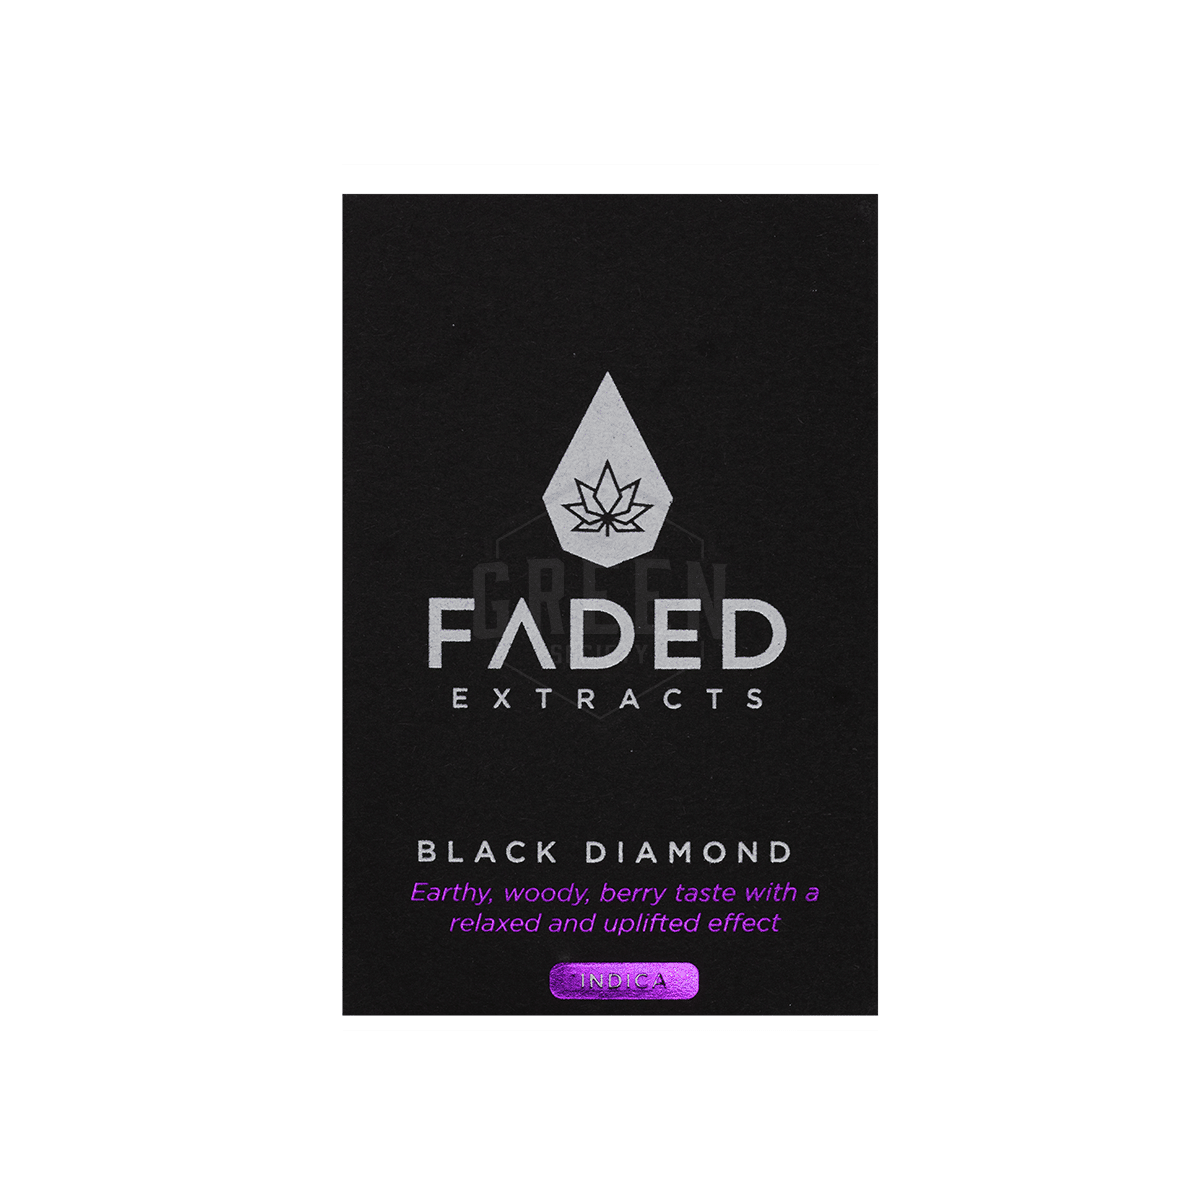 Black Diamond Shatter by Faded Extracts by Green Society - Image © 2018 Green Society. All Rights Reserved.